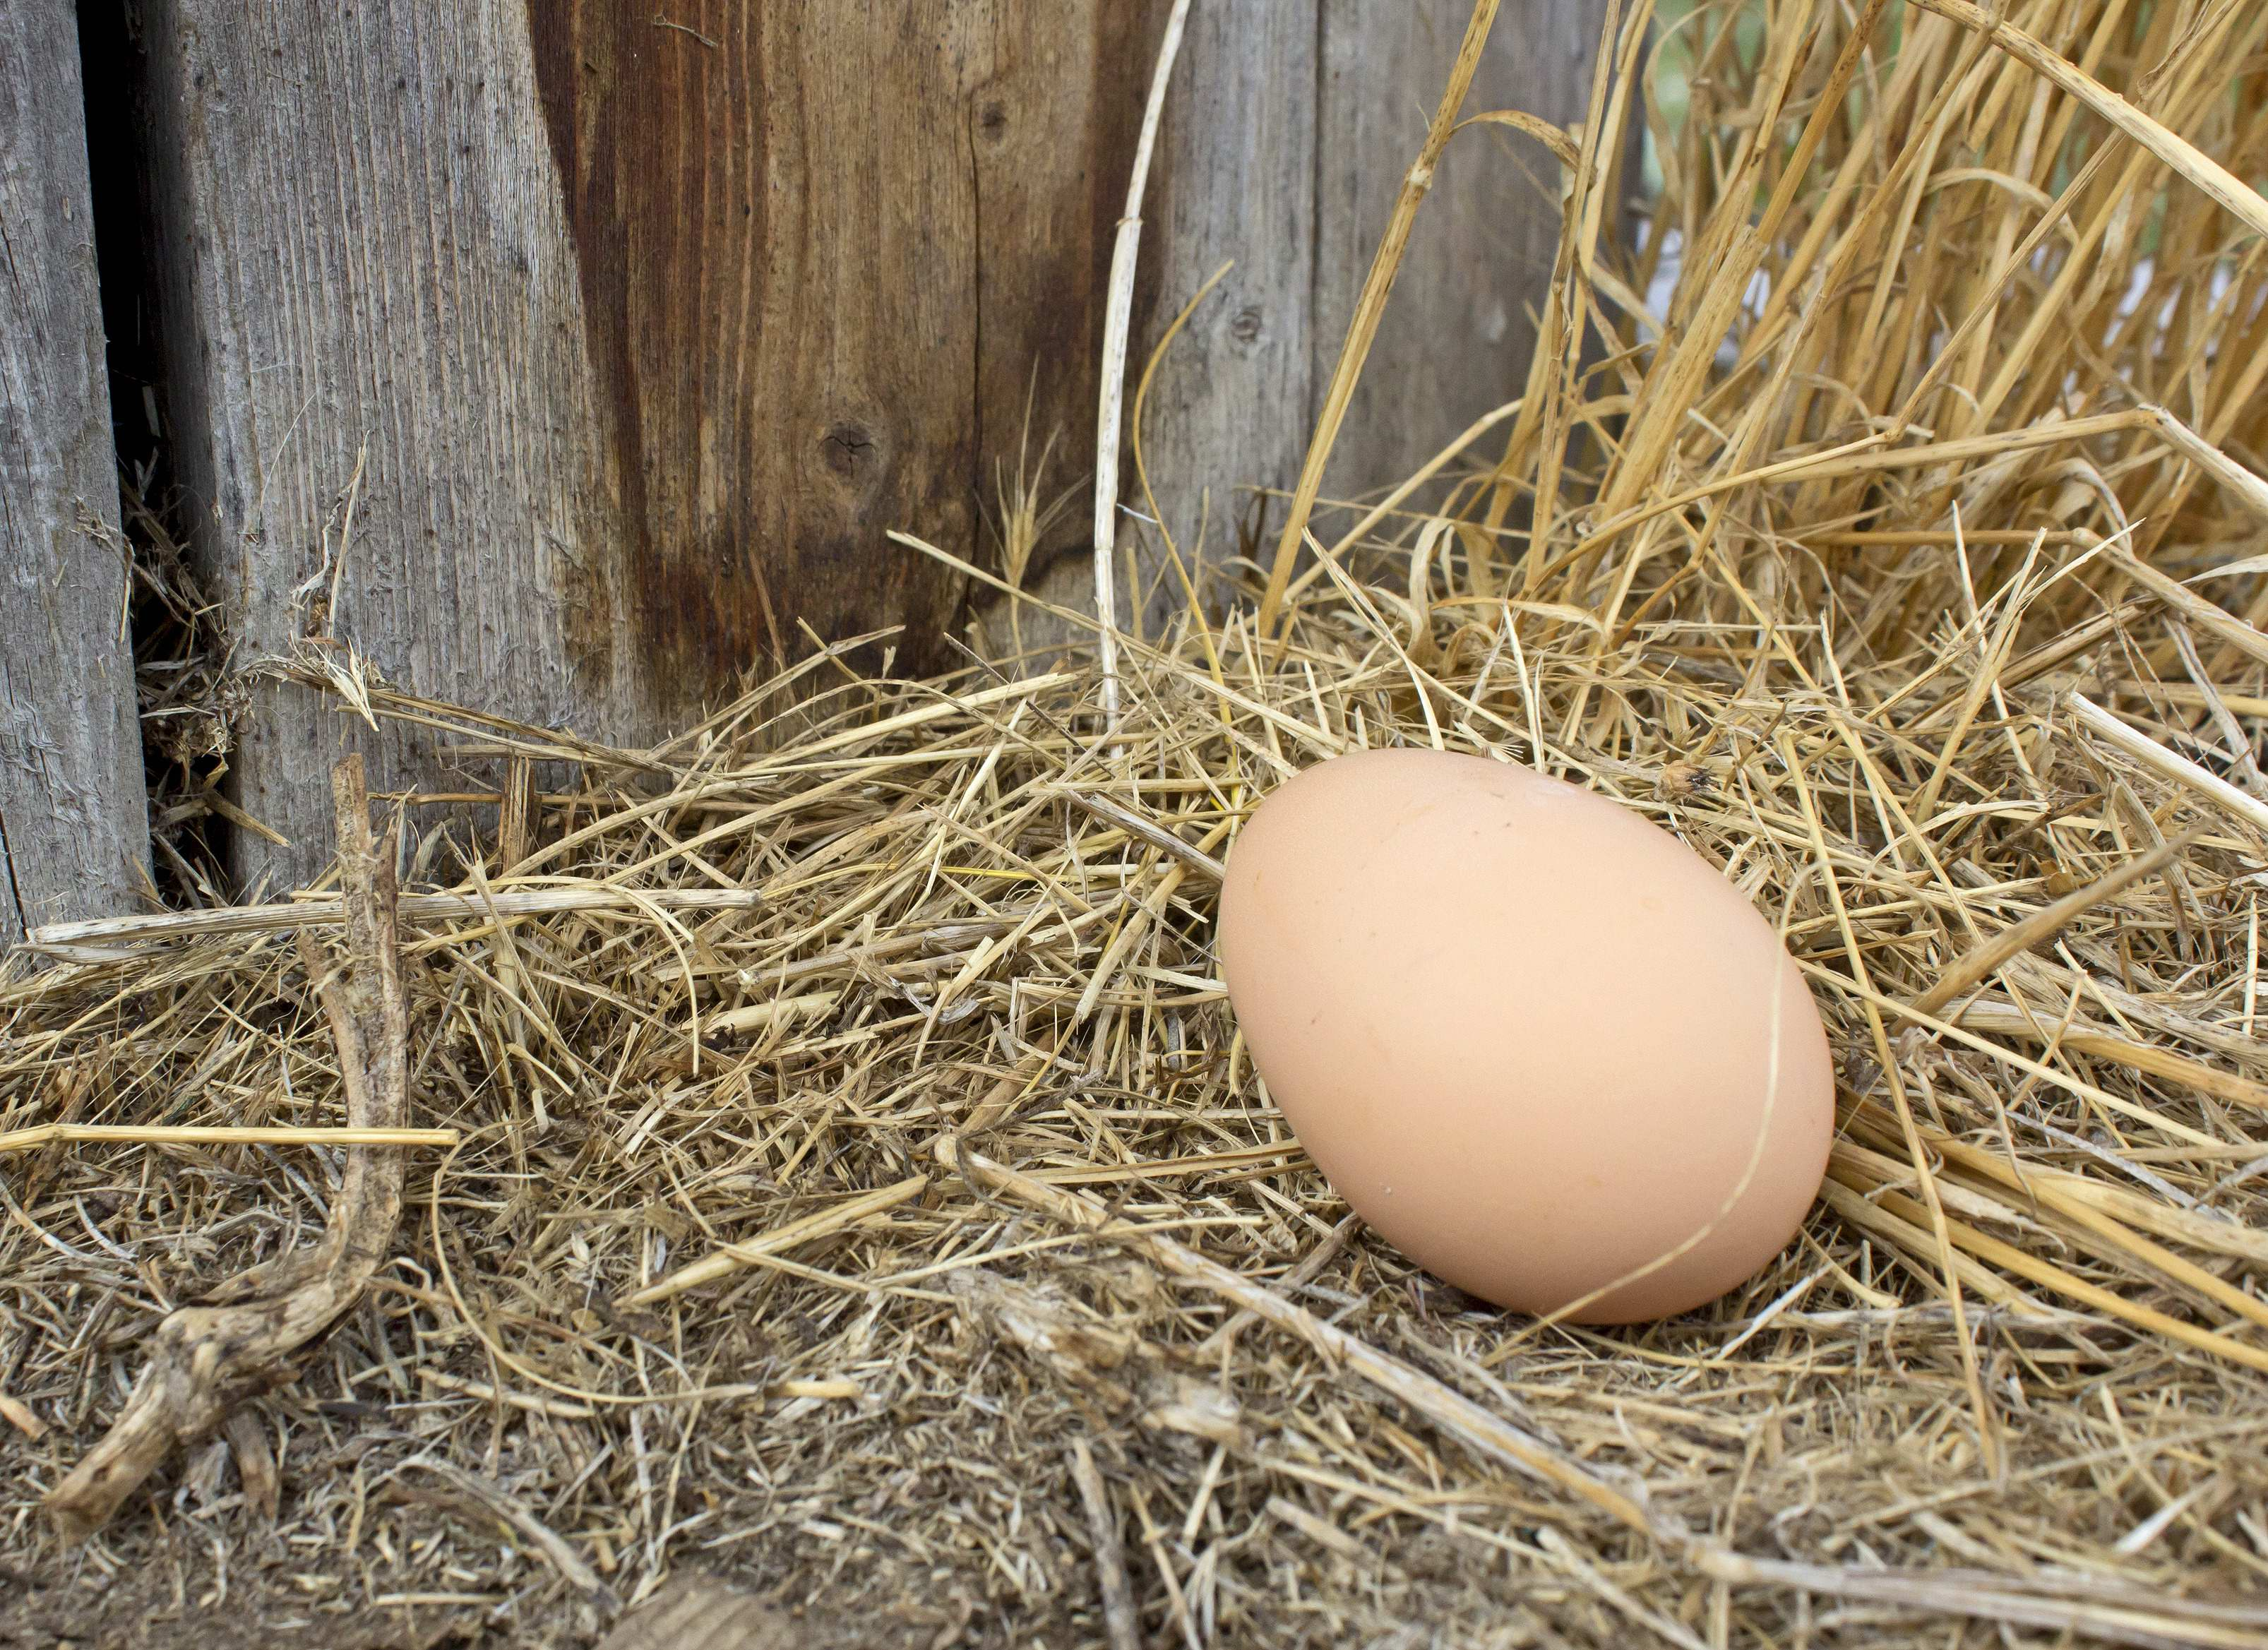 How long can eggs be left outside once they've been laid before being refrigerated?